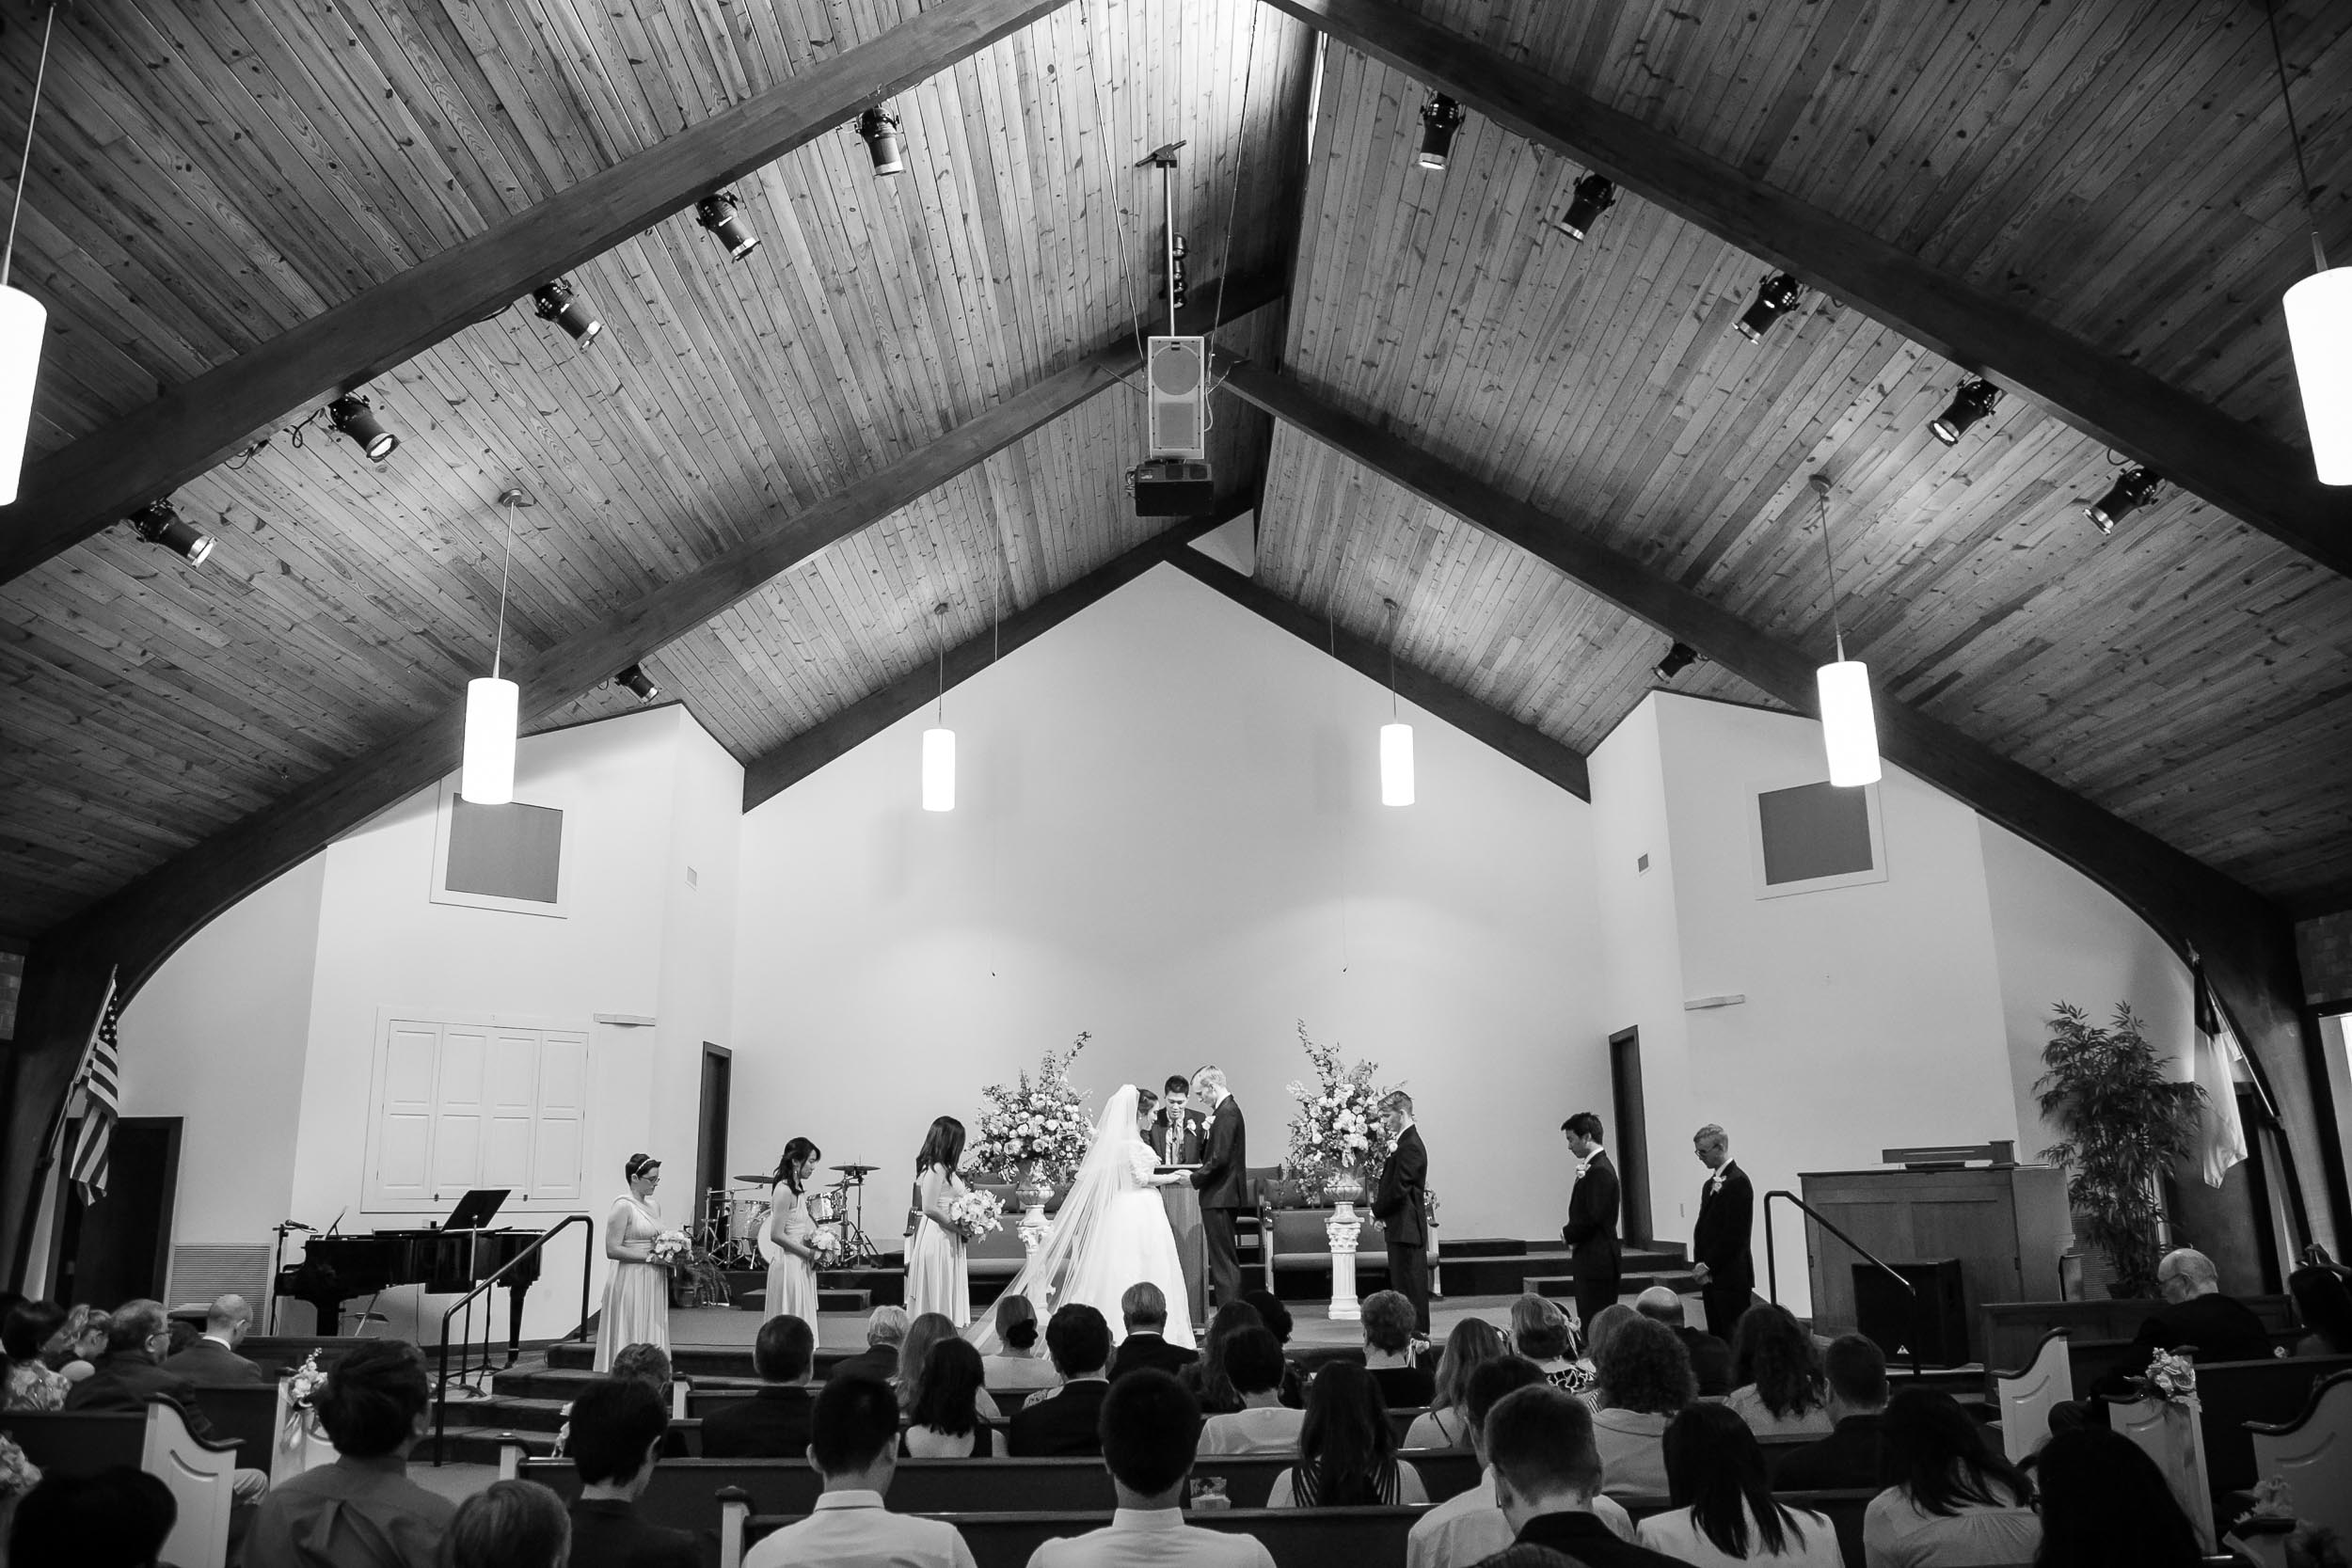 Campbell Lodge Wedding Photography   G. Lin Photography   Wide shot of church during wedding ceremony